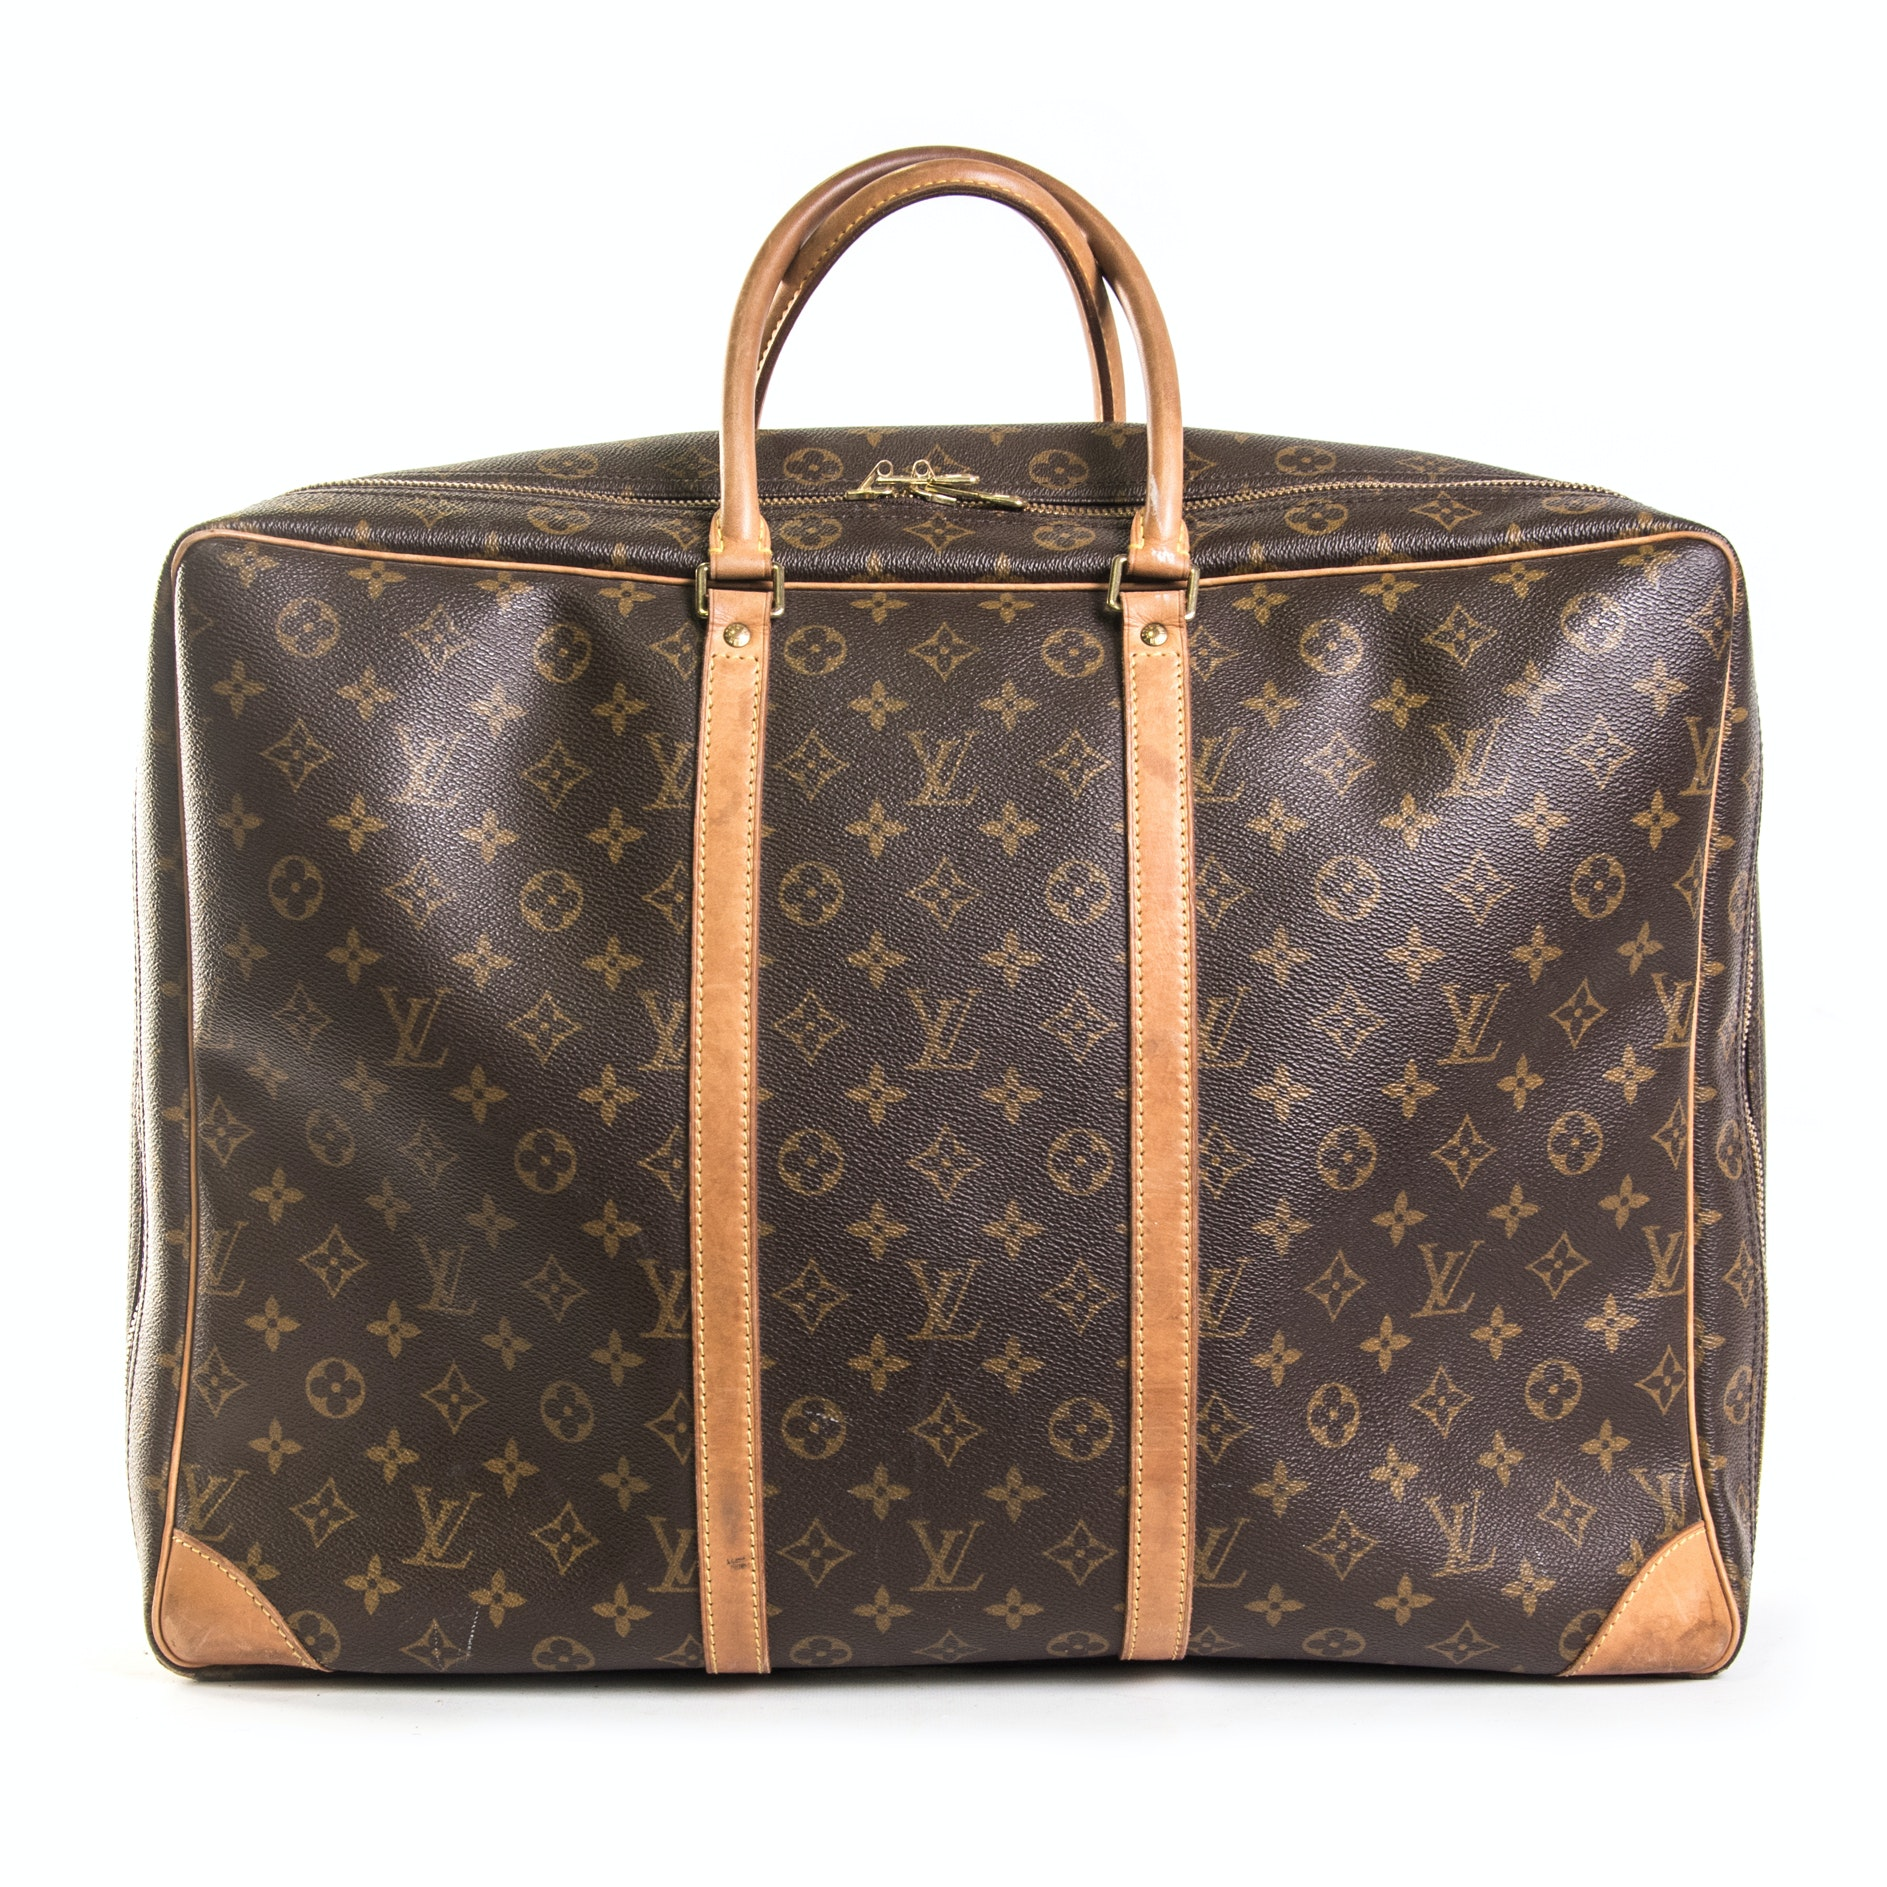 Louis Vuitton of Paris Monogram Canvas and Leather Soft-Sided Suitcase